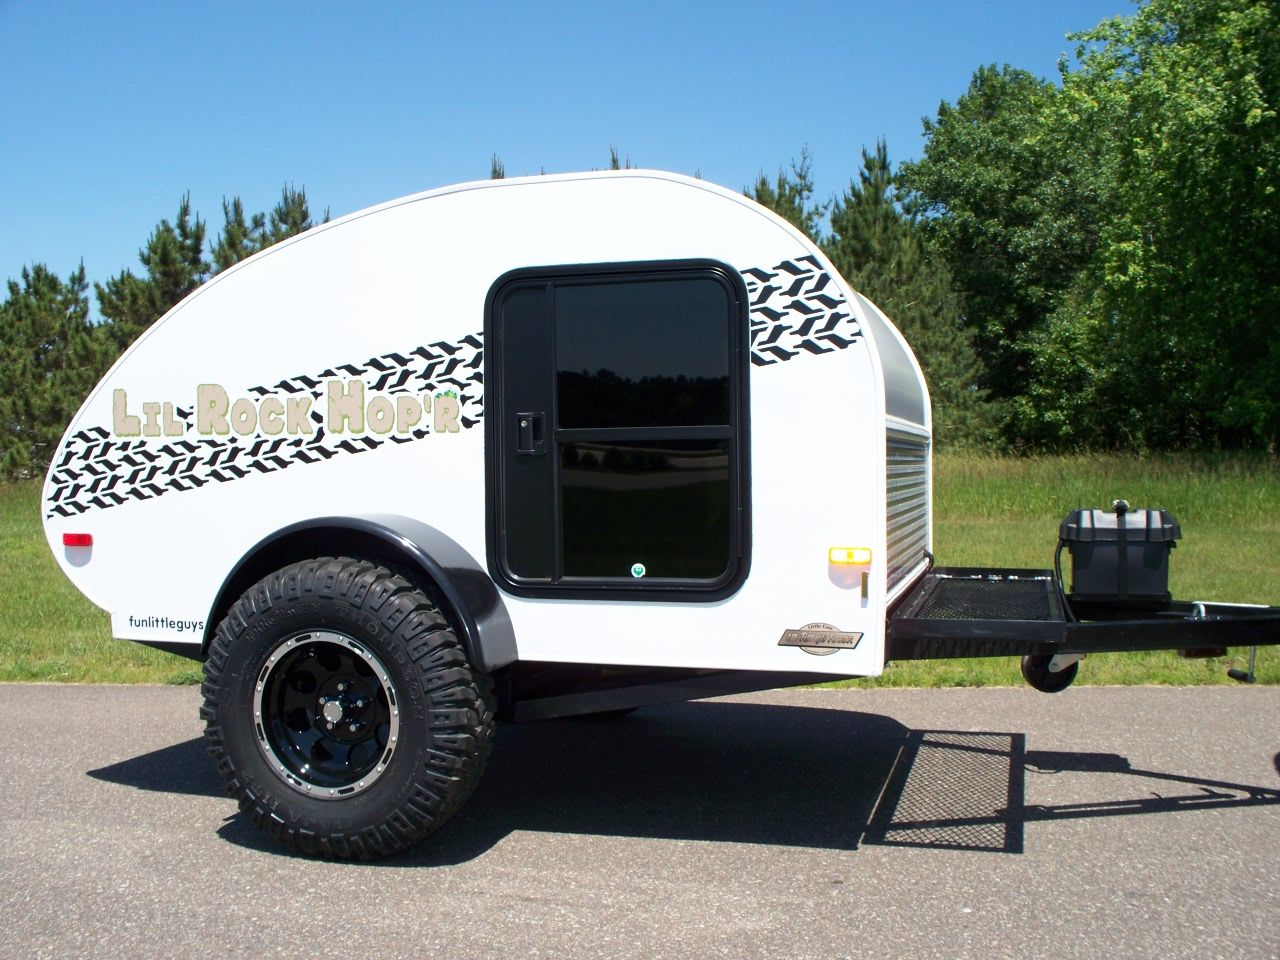 Micro Lightweight Travel Campers Bodybuilding Com Forums Small Camping Trailer Travel Camper Teardrop Trailer